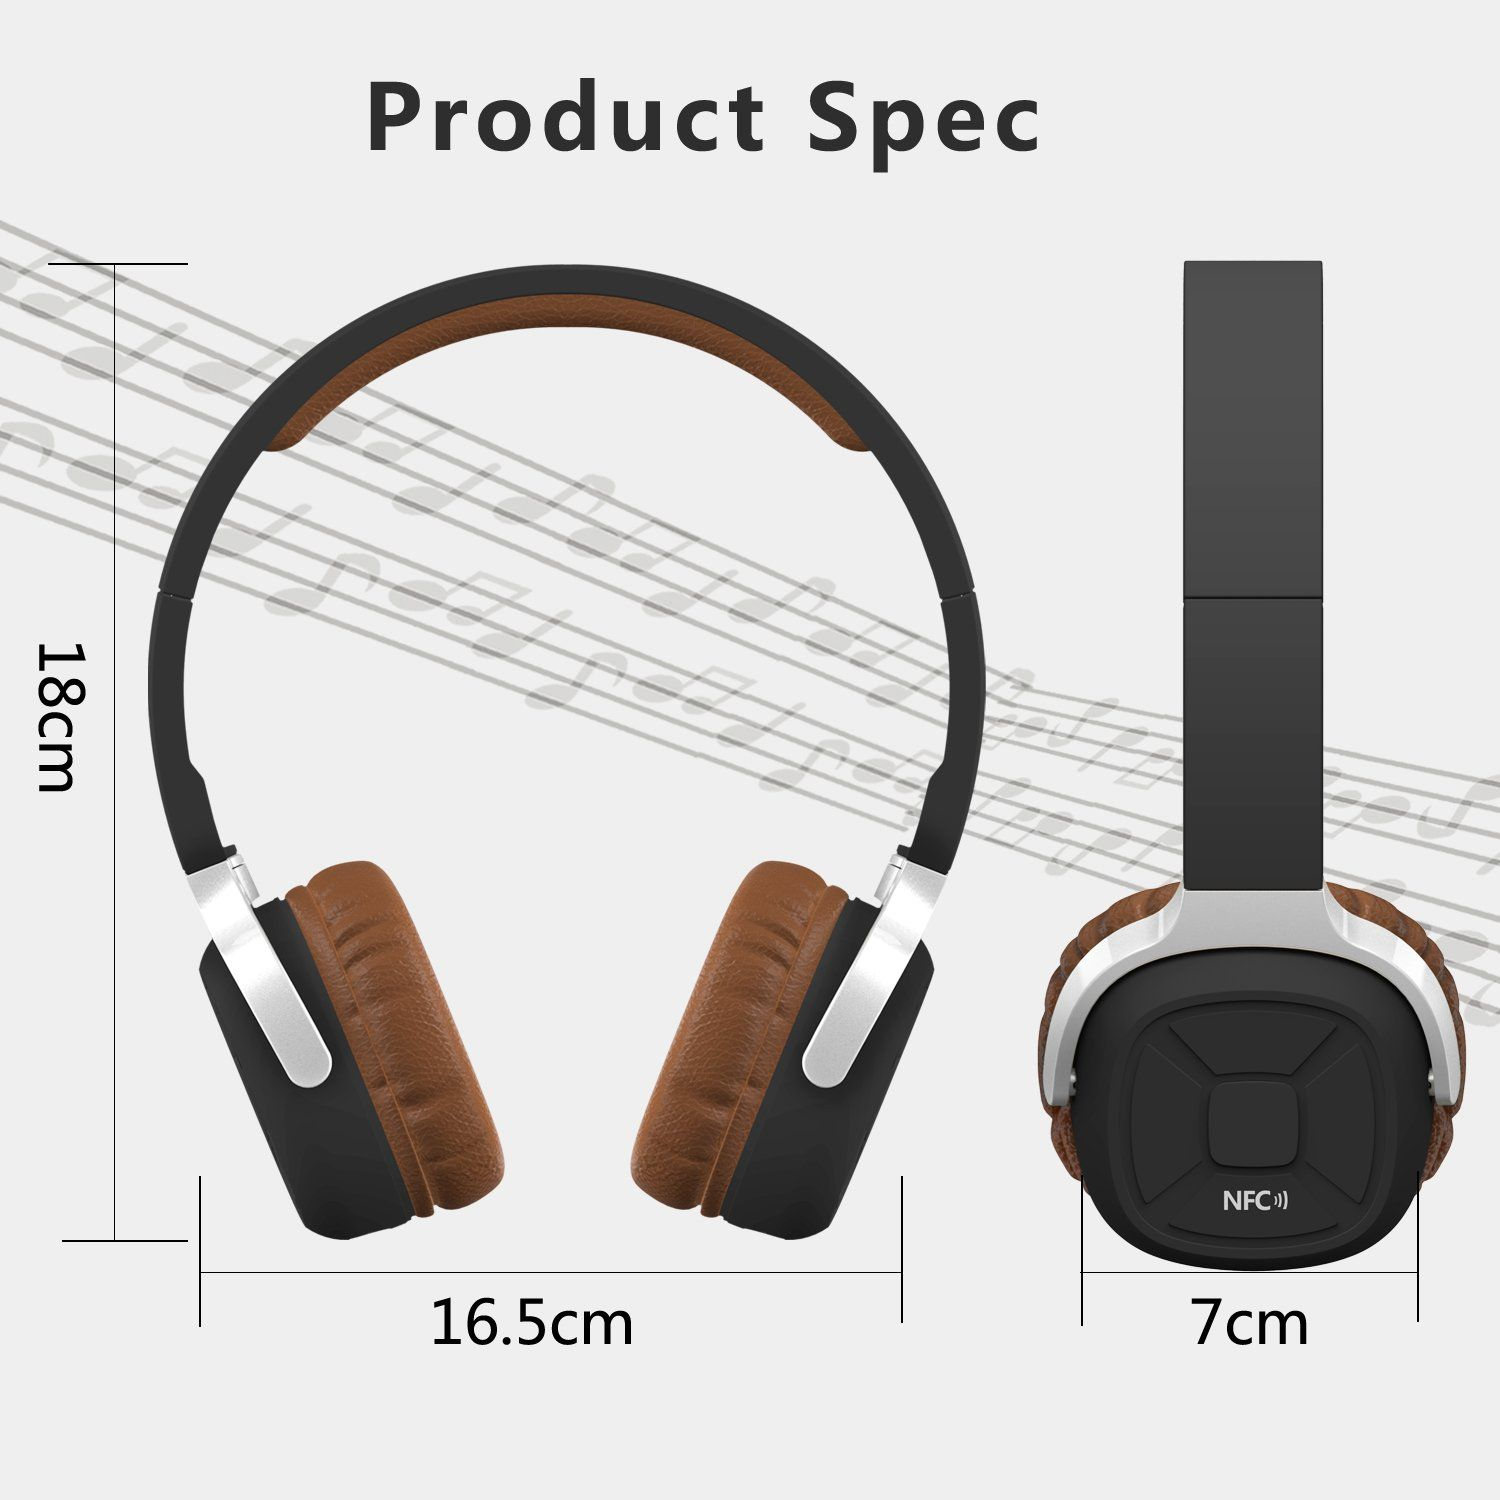 Wireless Nfc Headset Fold Bluetooth Headphones For Iphone Ios Android With Mic Pedometer Advanced Bluetooth 4 1 Technology And Bluetooth Headphones Headphones Headset